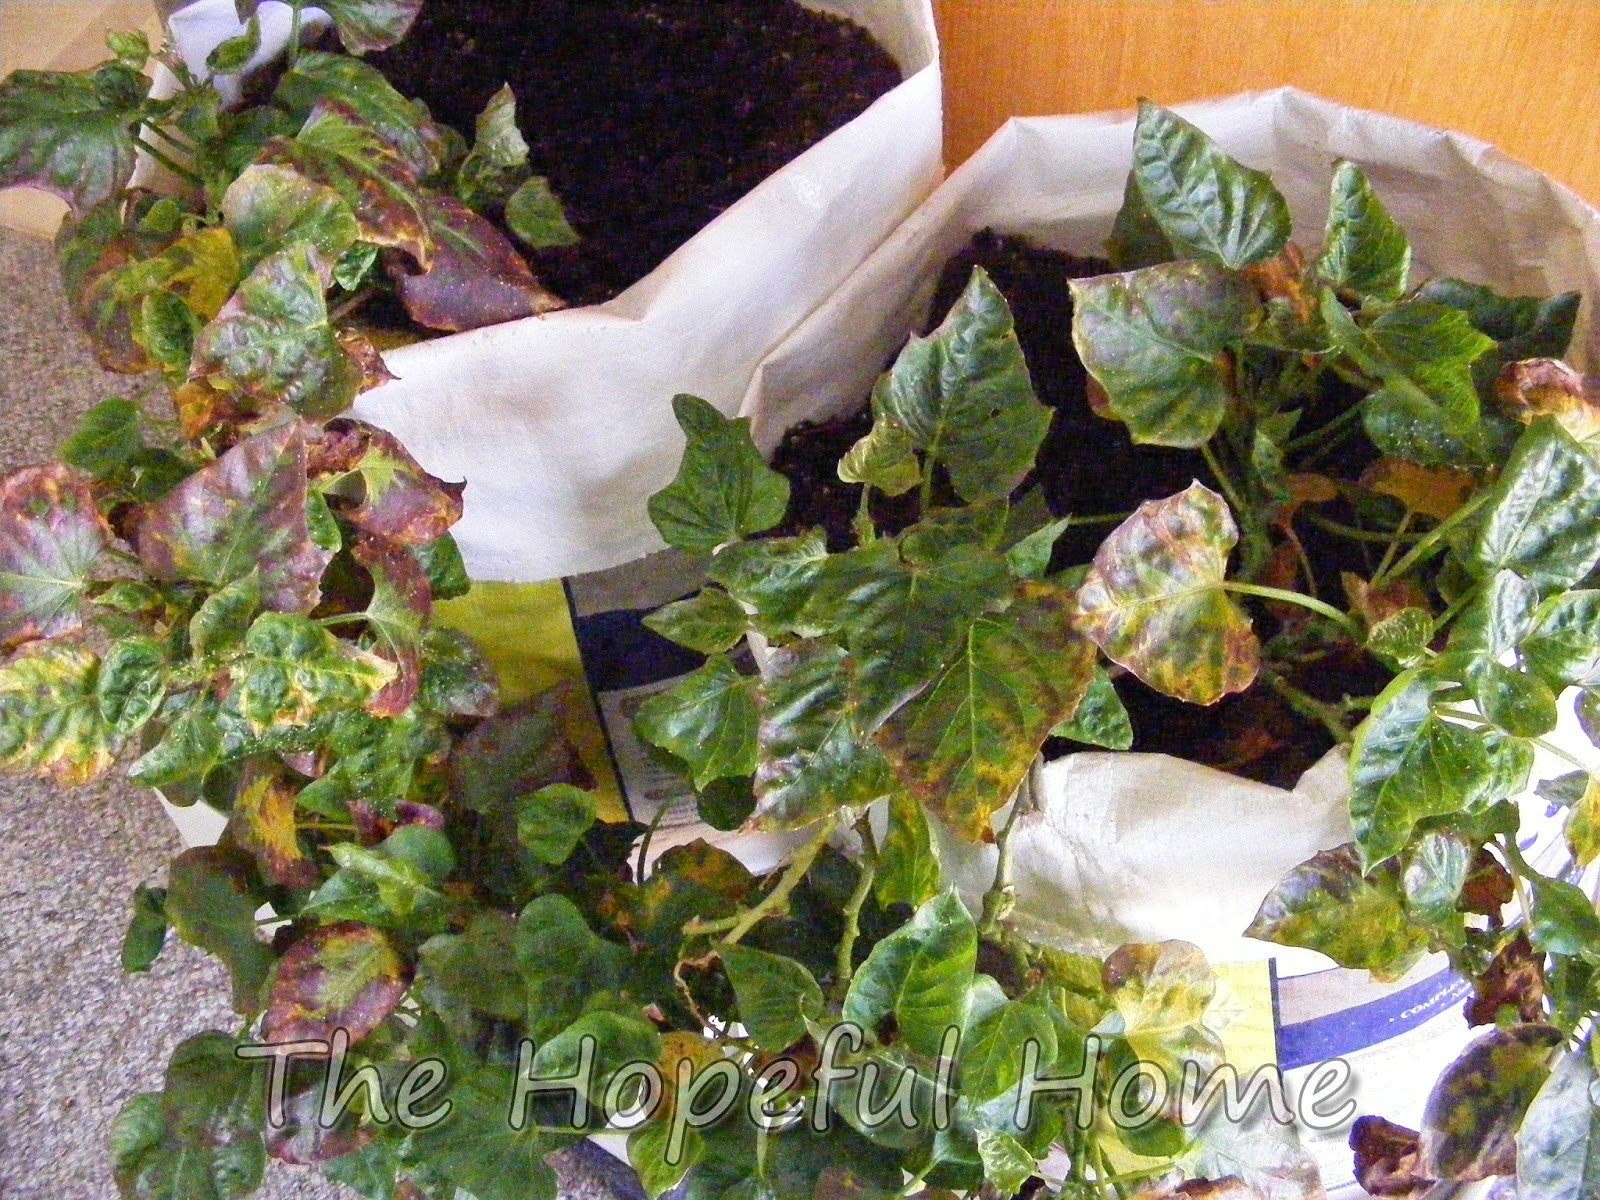 growing sweet potatoes in feed bag containers the hopeful home spot